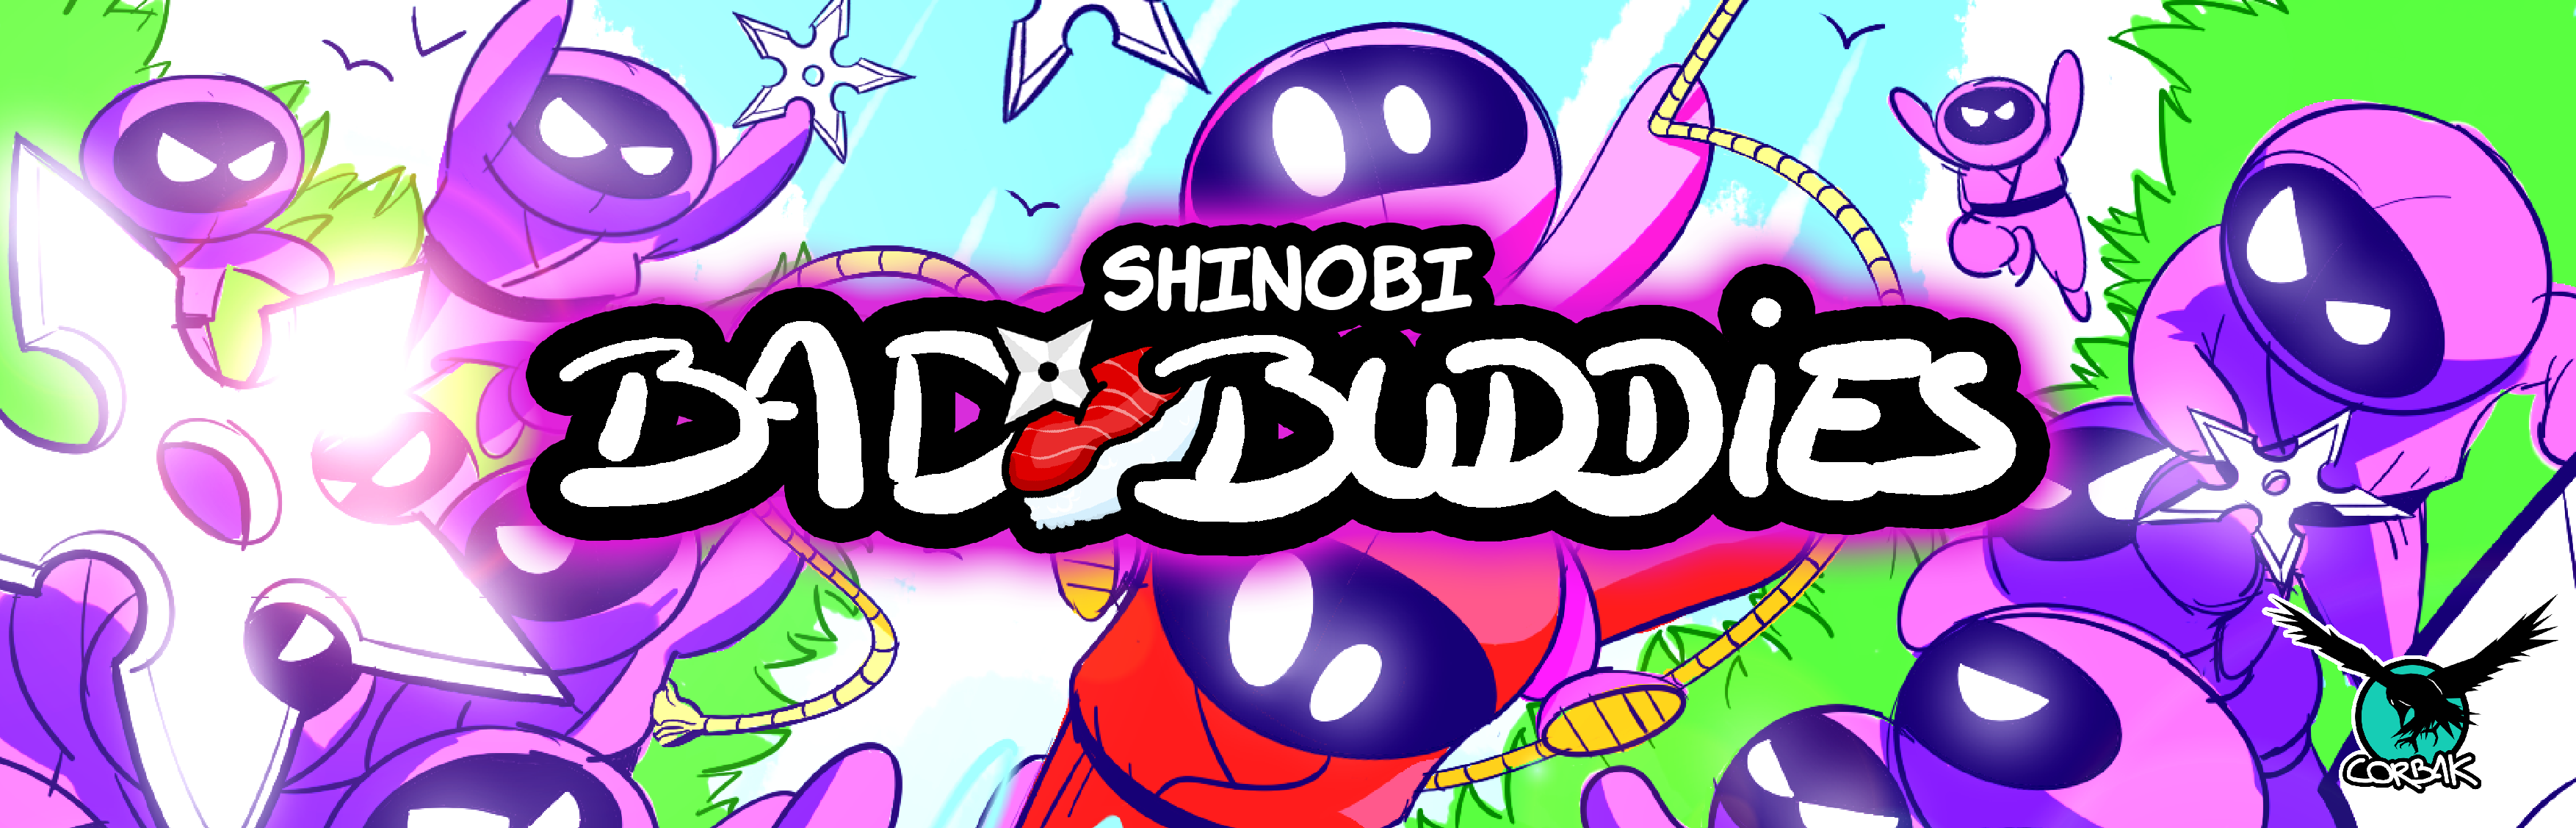 Shinobi Bad Buddies